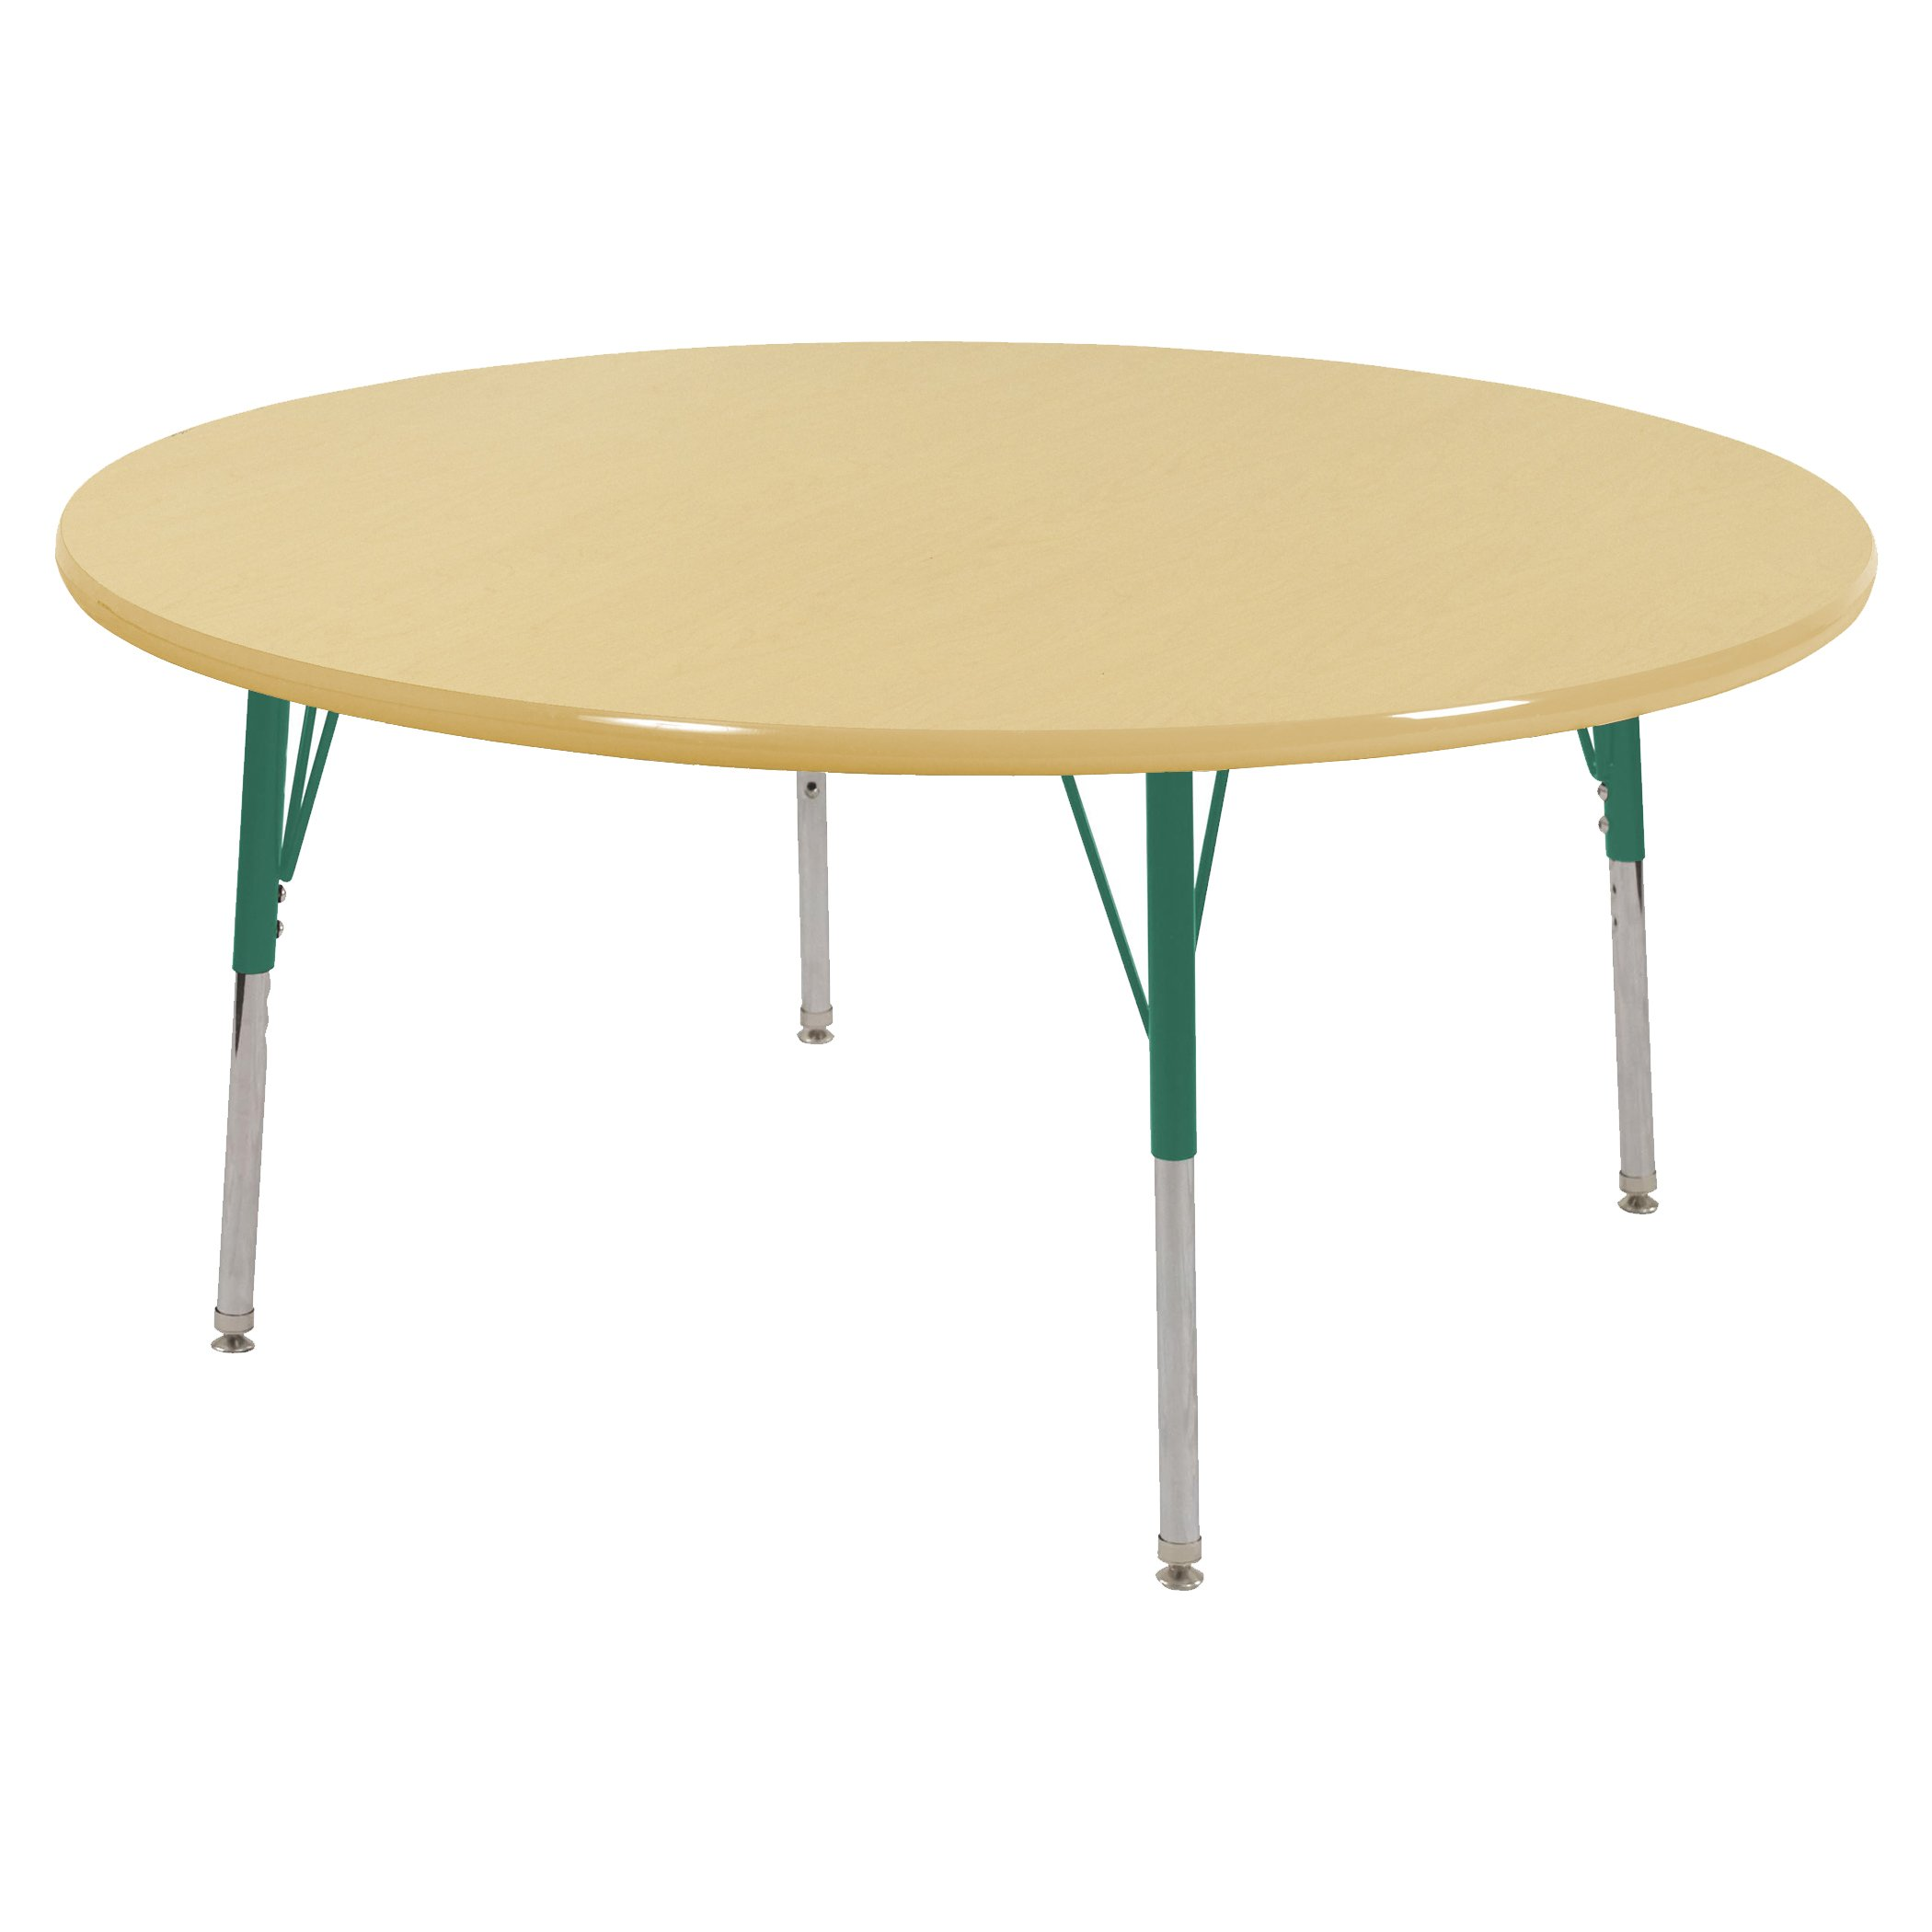 ECR4Kids T-Mold 48'' Round Activity School Table, Toddler Legs w/ Swivel Glides, Adjustable Height 15-23 inch (Maple/Green)